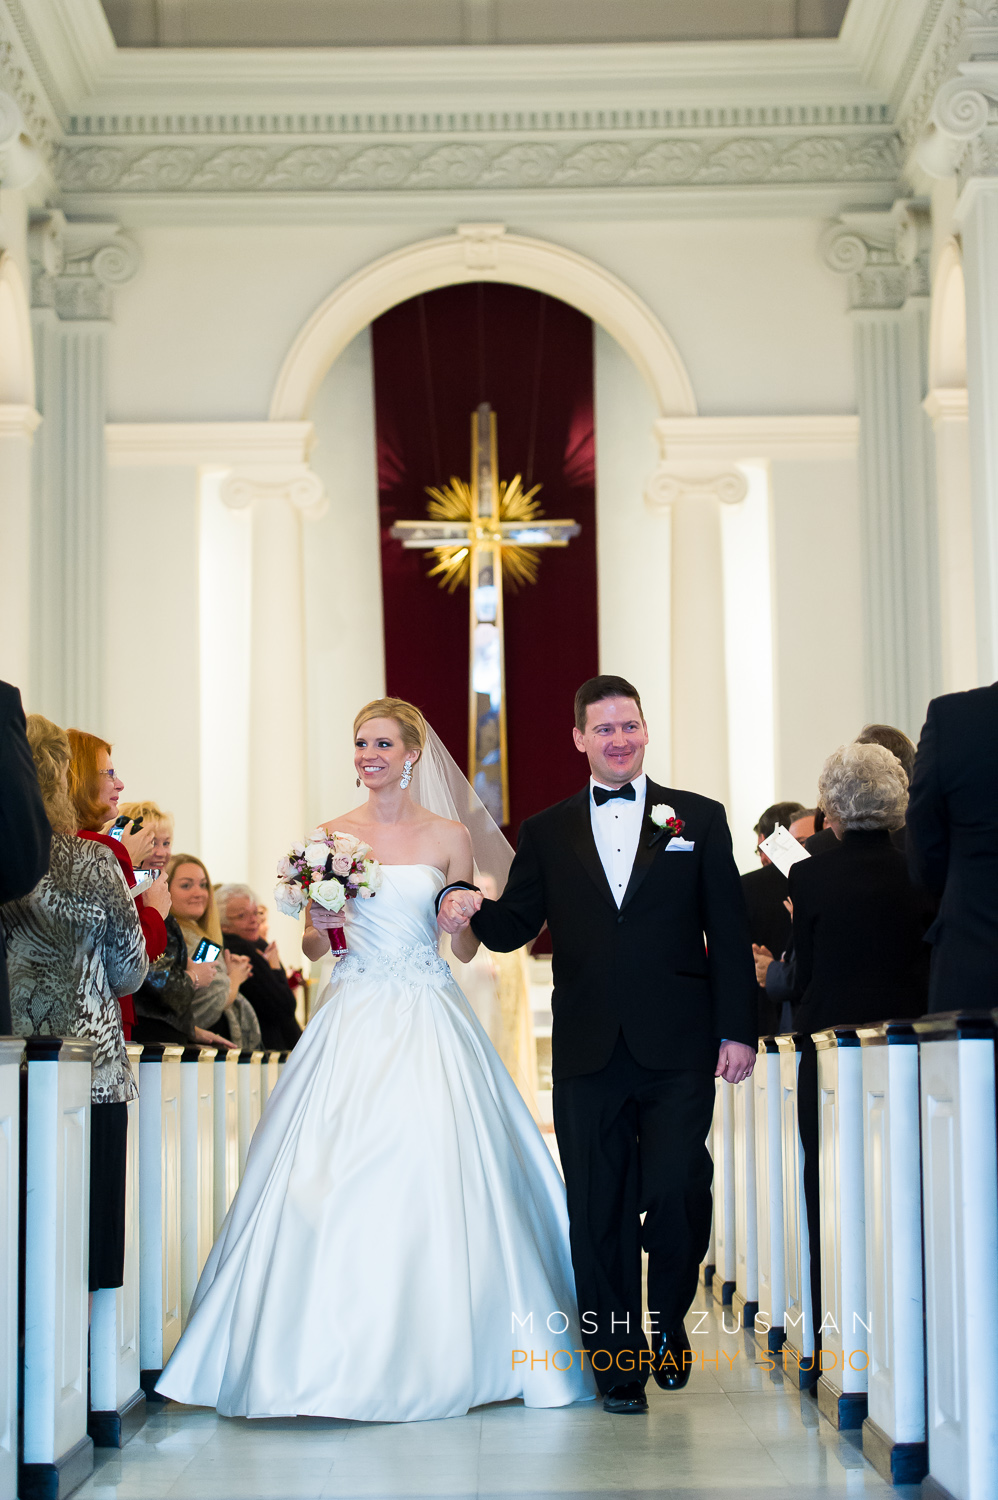 DC_Wedding_Photographer_Moshe_Zusman_Mayflower_Renaissance Washington-39.jpg